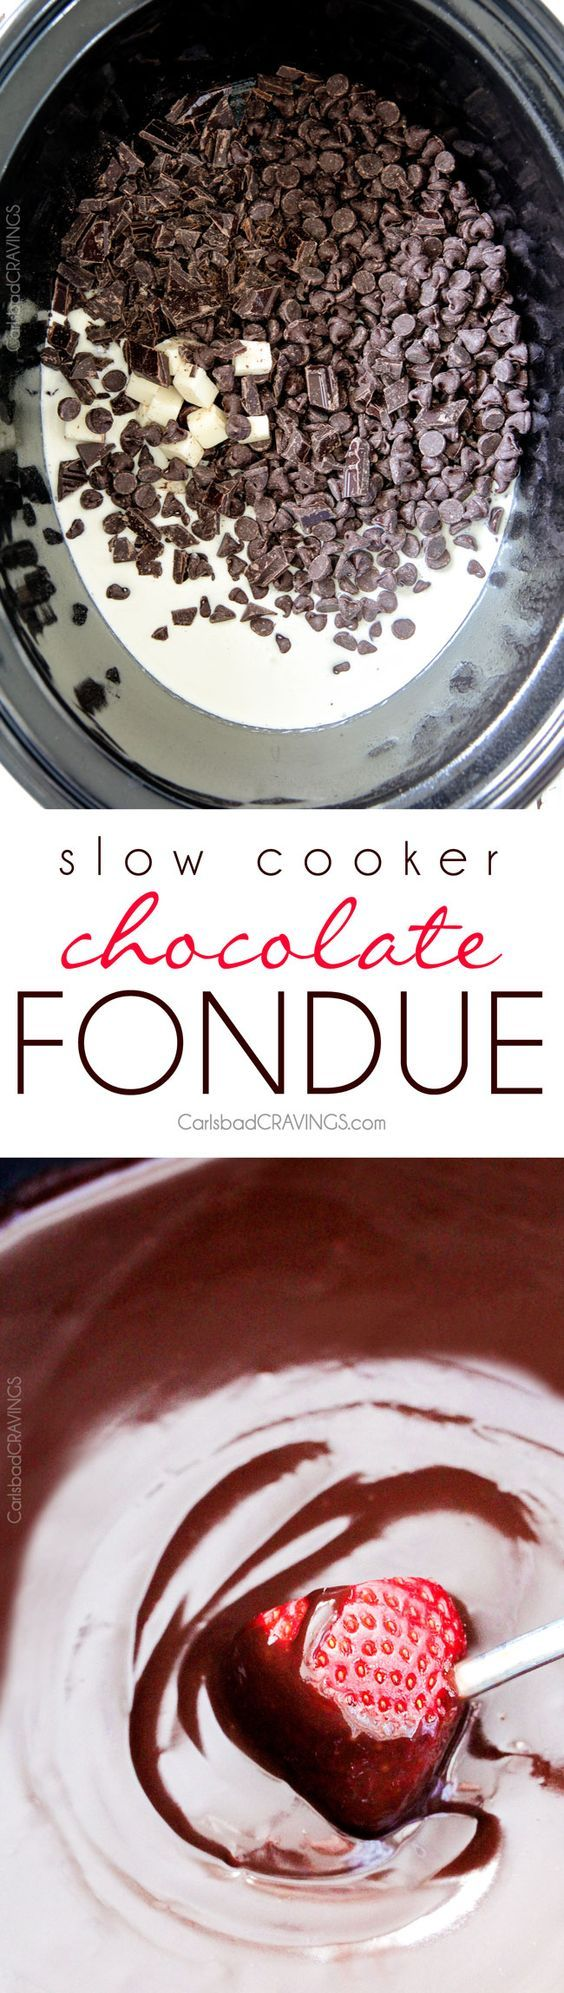 Slow Cooker Chocolate Fondue - EASY, velvety chocolate is the perfect make ahead party or special occasion appetizer or dessert. Perfect for Valentine's Day, baby/bridal showers, girls night, movie night or just because! (slow cooker baked oatmeal)